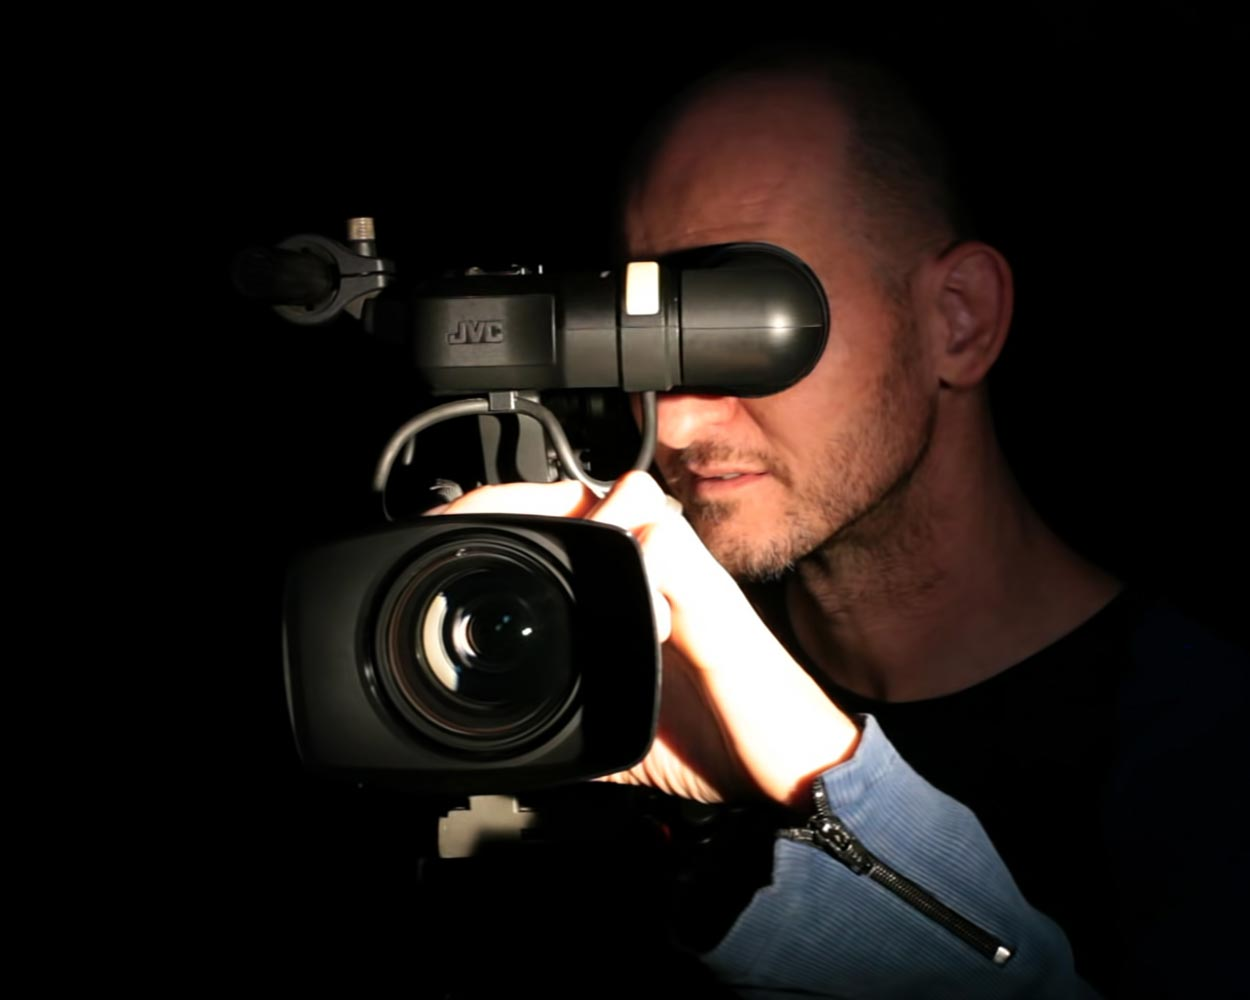 VICEVERSA MEDIA MARBELLA VIDEO PRODUCTION, PHOTOGRAPHY, CORPORATE VIDEO, PROMOTIONAL VIDEO, PROMERTY SPECIALIST, HOTEL VIDEO - TEAM VICEVERSA